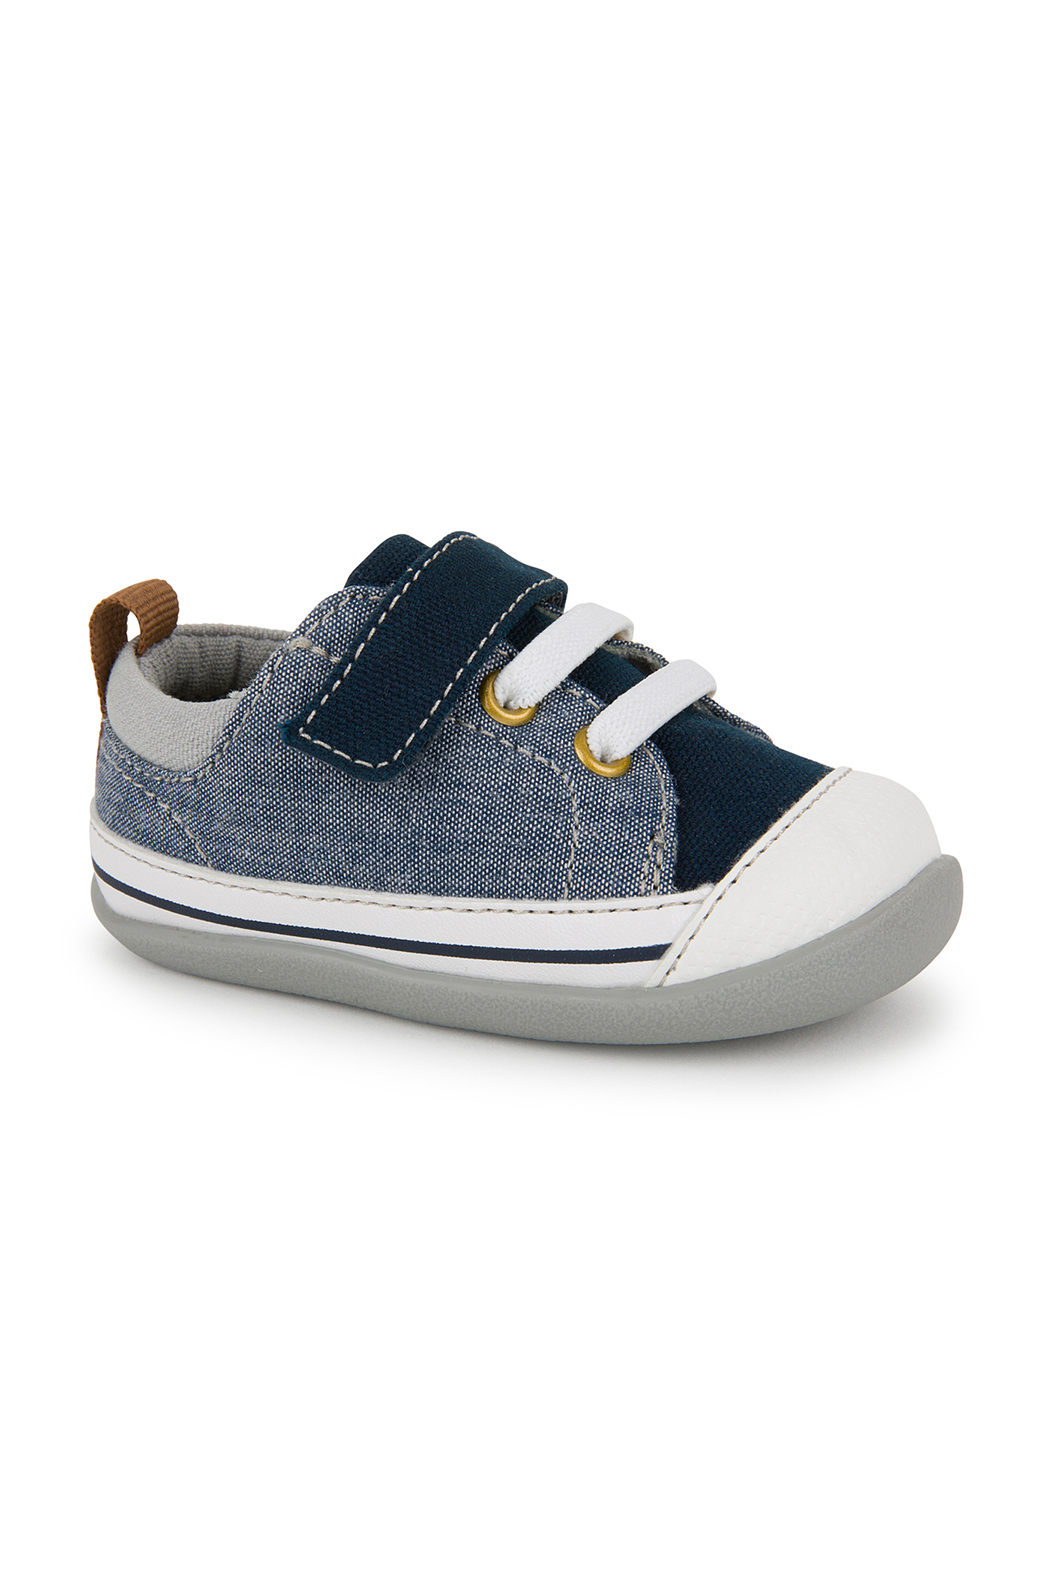 See Kai Run Stevie II Infant Sneaker - Main Image